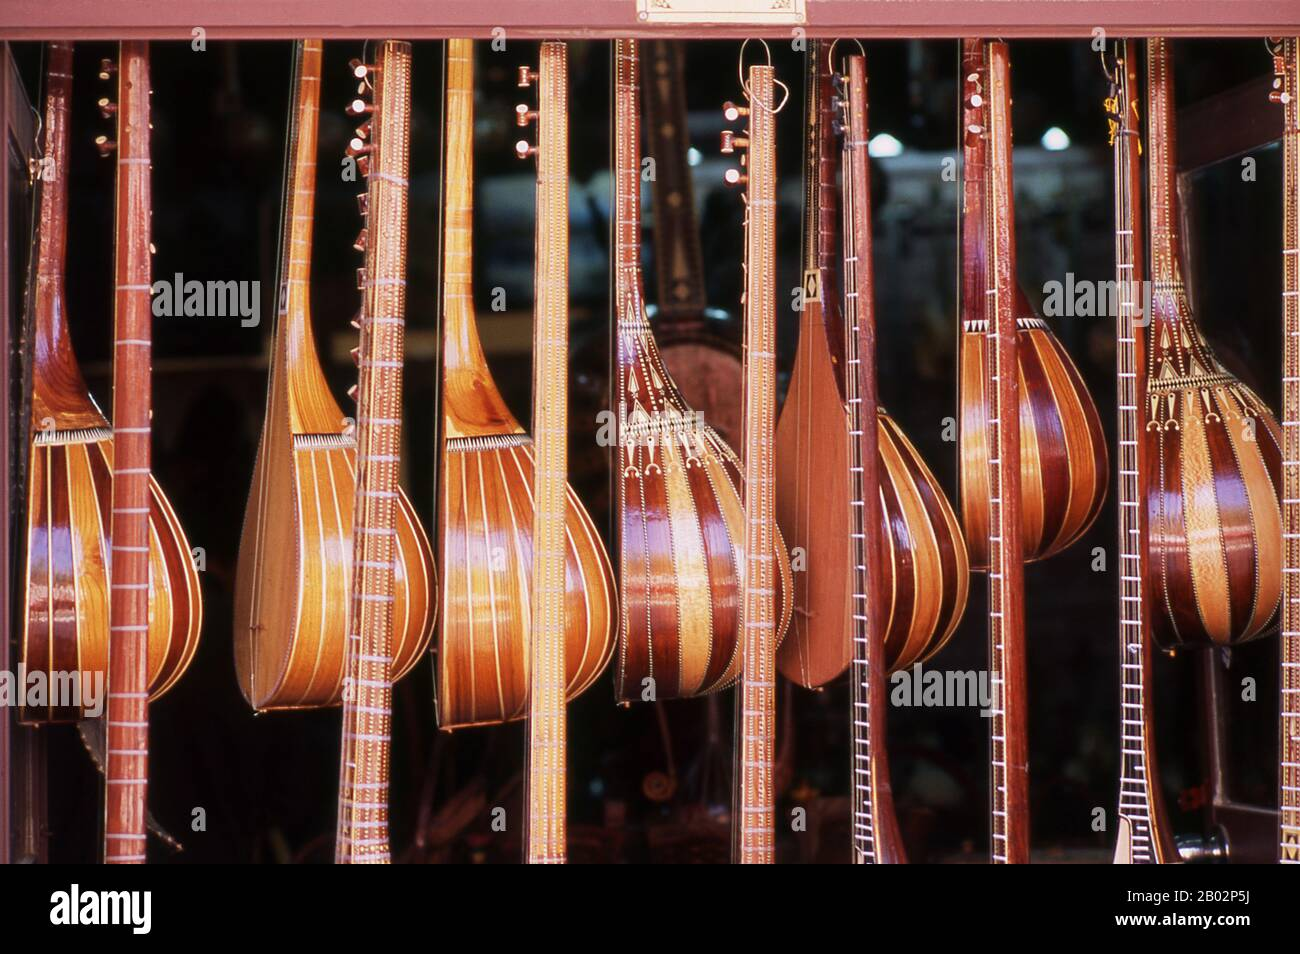 The dutar (also dotar or doutar) is a traditional long-necked two-stringed lute found in Iran and Central Asia. When played, the strings are usually plucked by the Uighurs of Western China and strummed and plucked by the Tajiks, Turkmen, and Uzbeks.  The earliest mention of Kashgar occurs when a Chinese Han Dynasty (206 BCE – 220 CE) envoy traveled the Northern Silk Road to explore lands to the west.  Another early mention of Kashgar is during the Former Han (also known as the Western Han Dynasty), when in 76 BCE the Chinese conquered the Xiongnu, Yutian (Khotan), Sulei (Kashgar), and a group Stock Photo